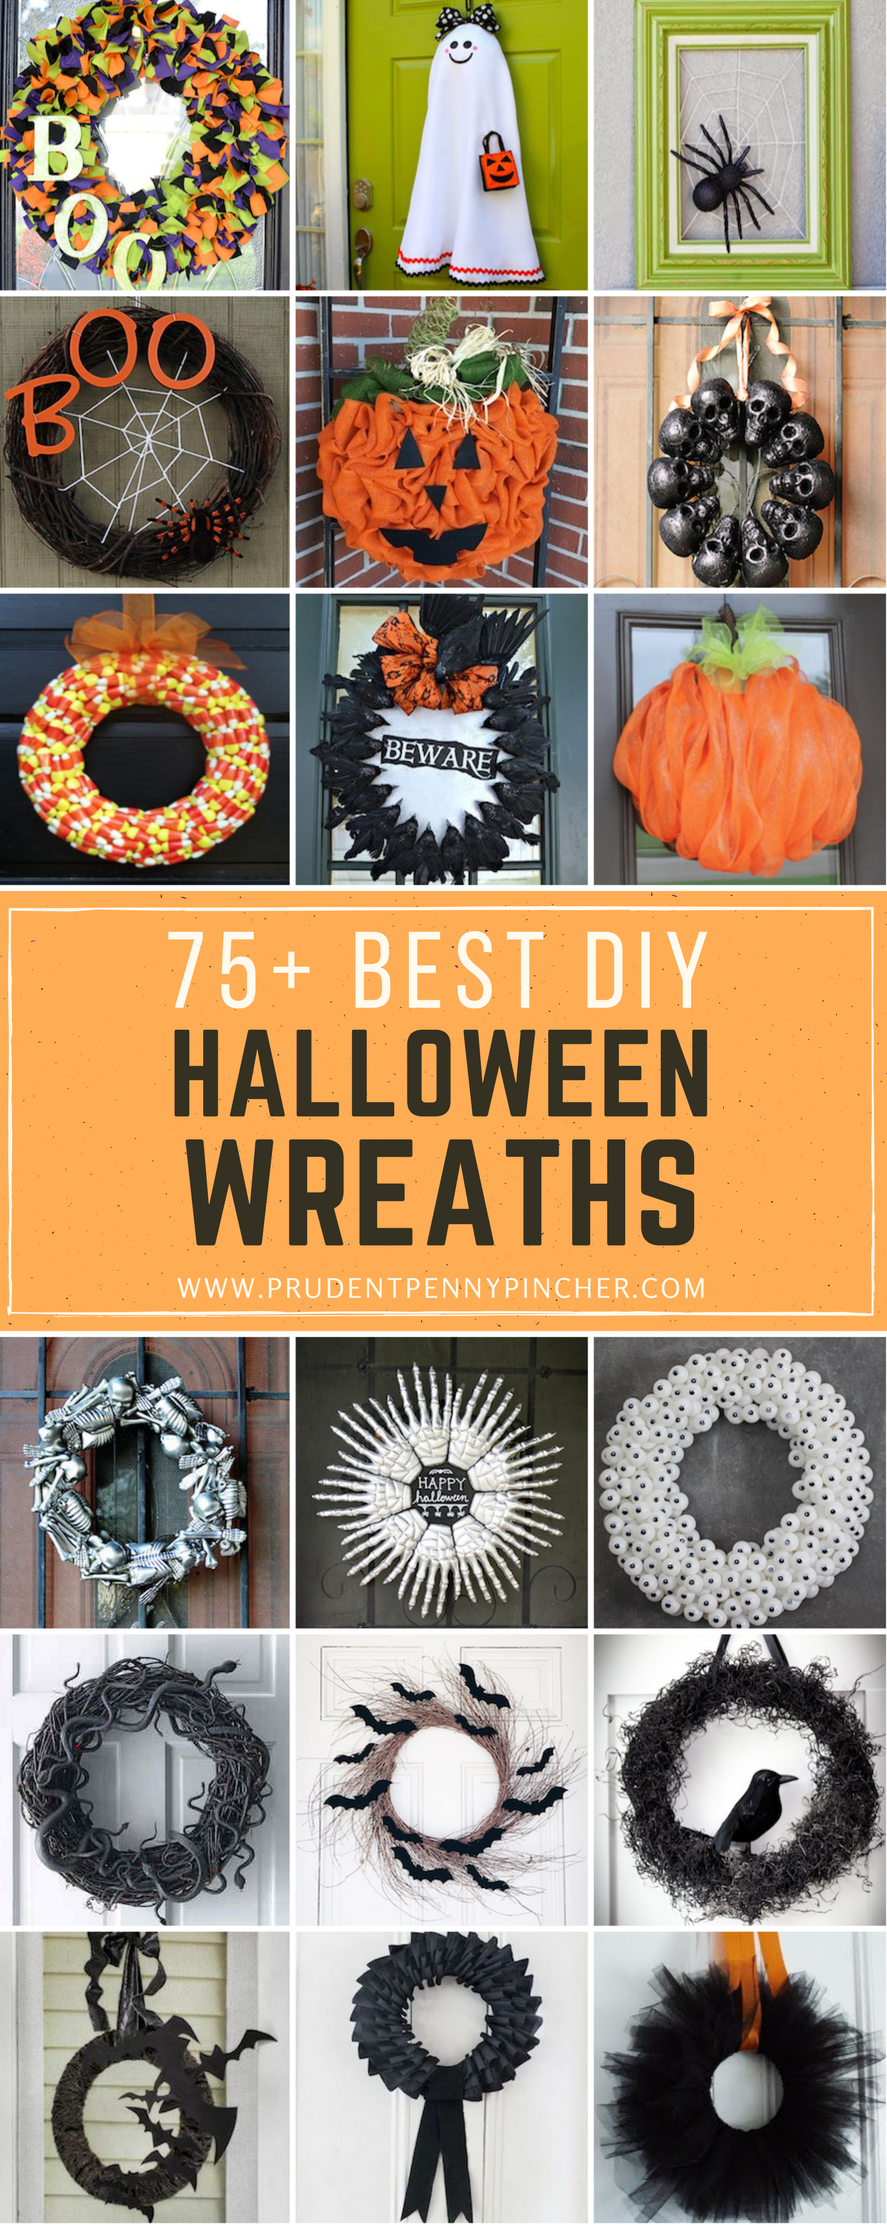 50 Cheap Easy To Make Halloween Bats Decoration Ideas 50 Cheap Easy To Make Halloween Bats Decoration Ideas new images